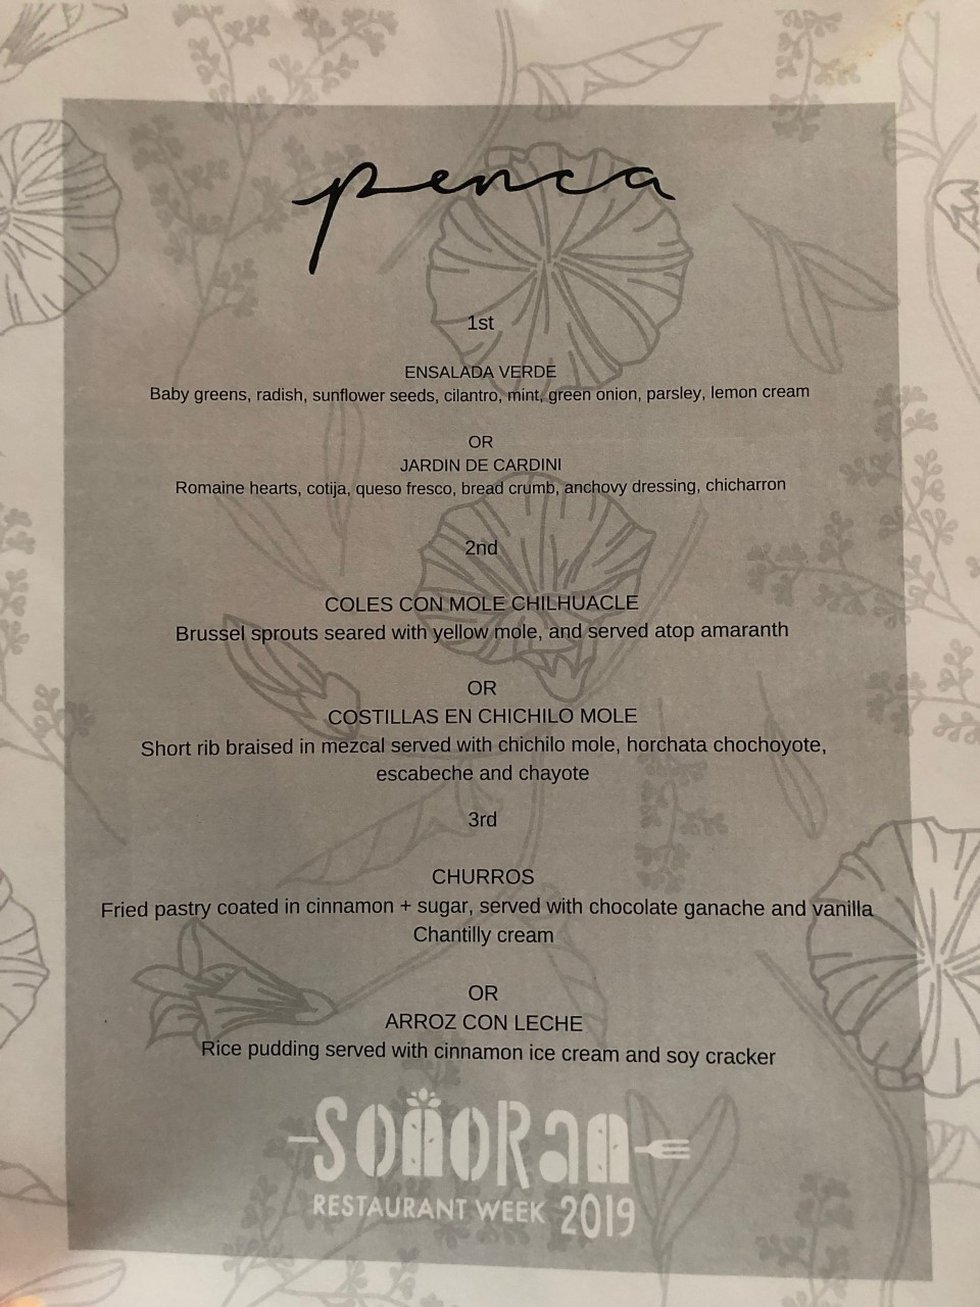 Penca executive chef David Solorzano has cooked up this special menu as part of the 10-day...